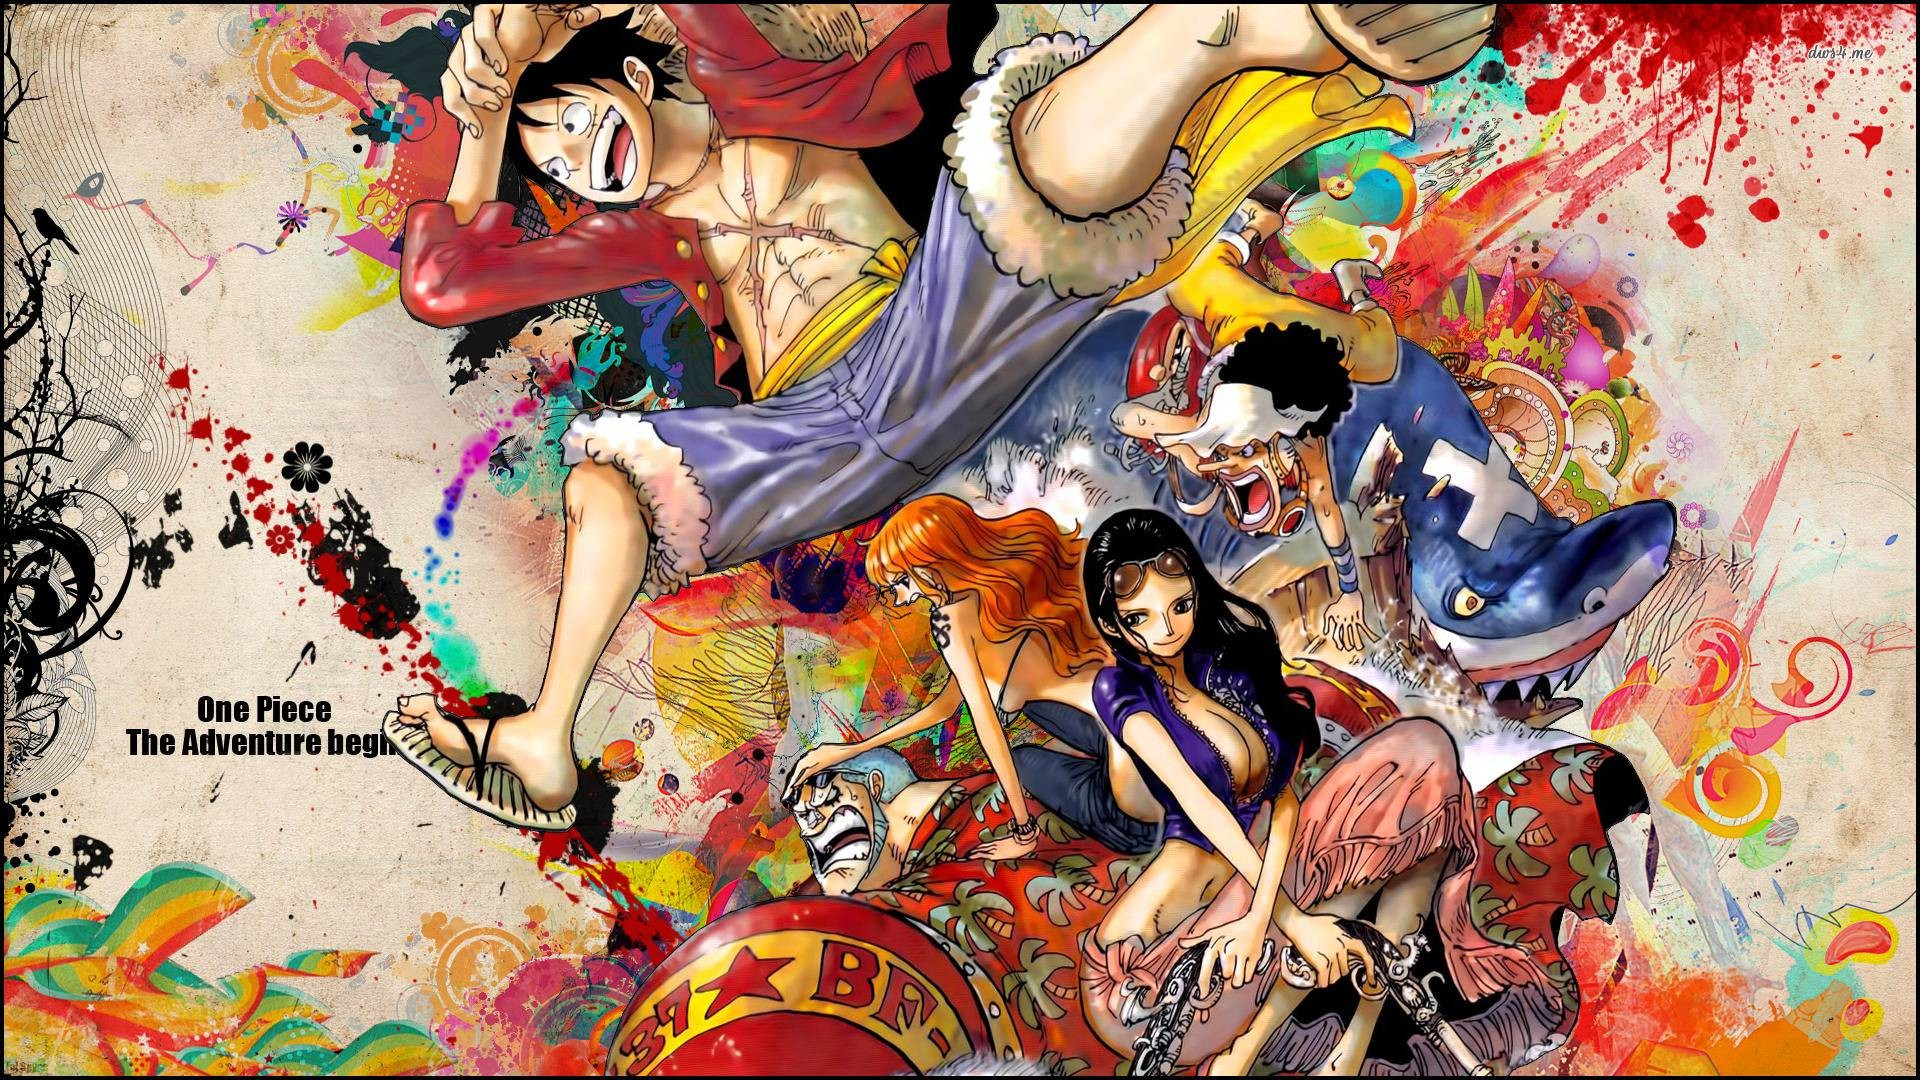 1920x1080 One Piece Chibi Wallpaper - One Piece Anime Wallpaper